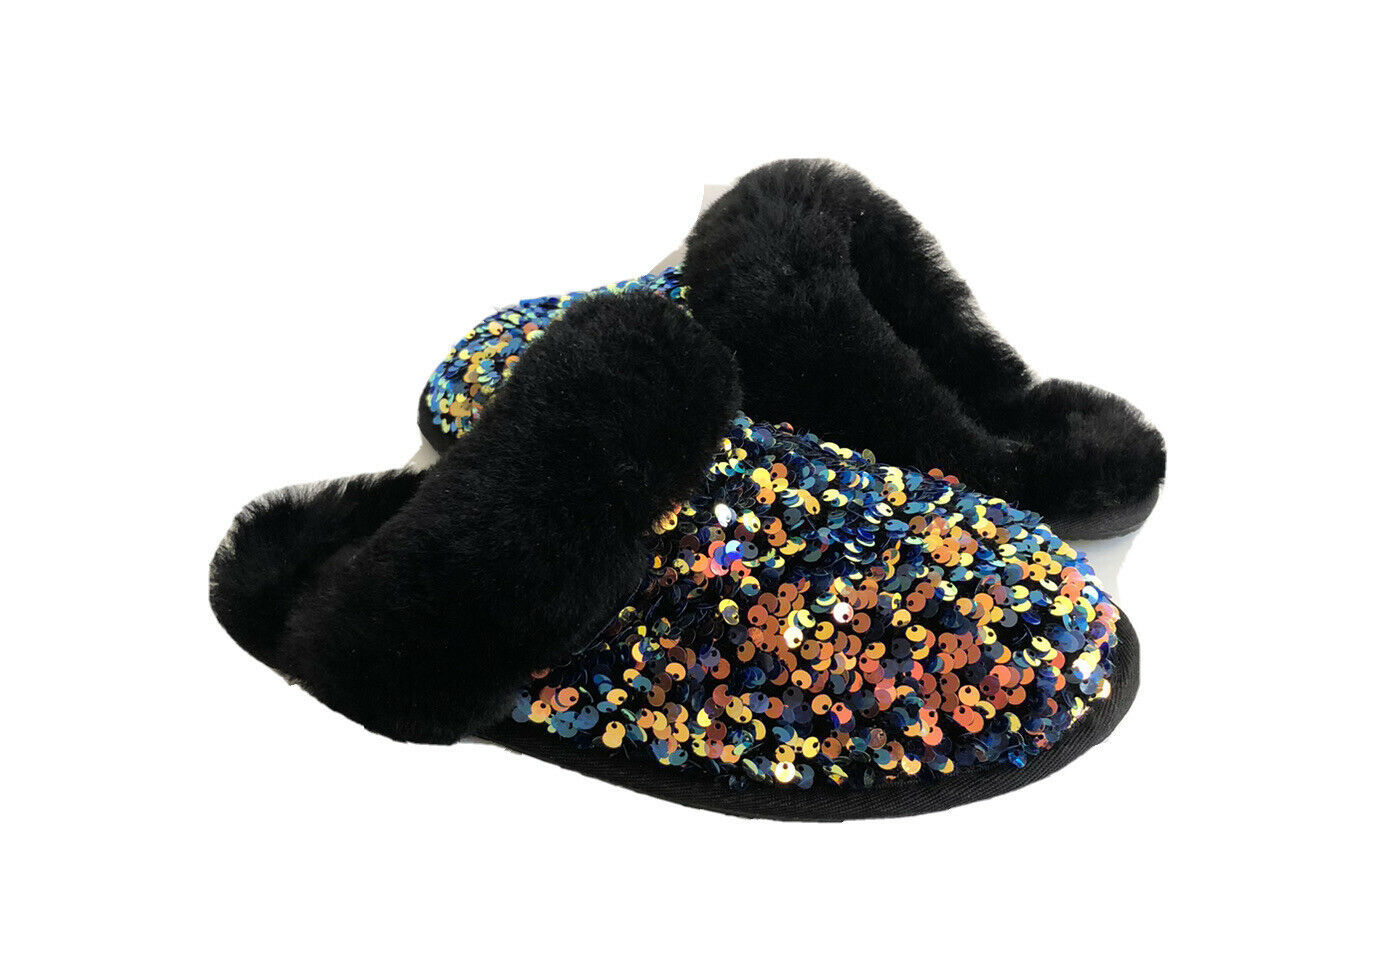 UGG SCUFFETTE II STELLAR SEQUIN SPARKLE BLACK SLIPPERS US 6 / EU 37 / UK 4 - $101.92